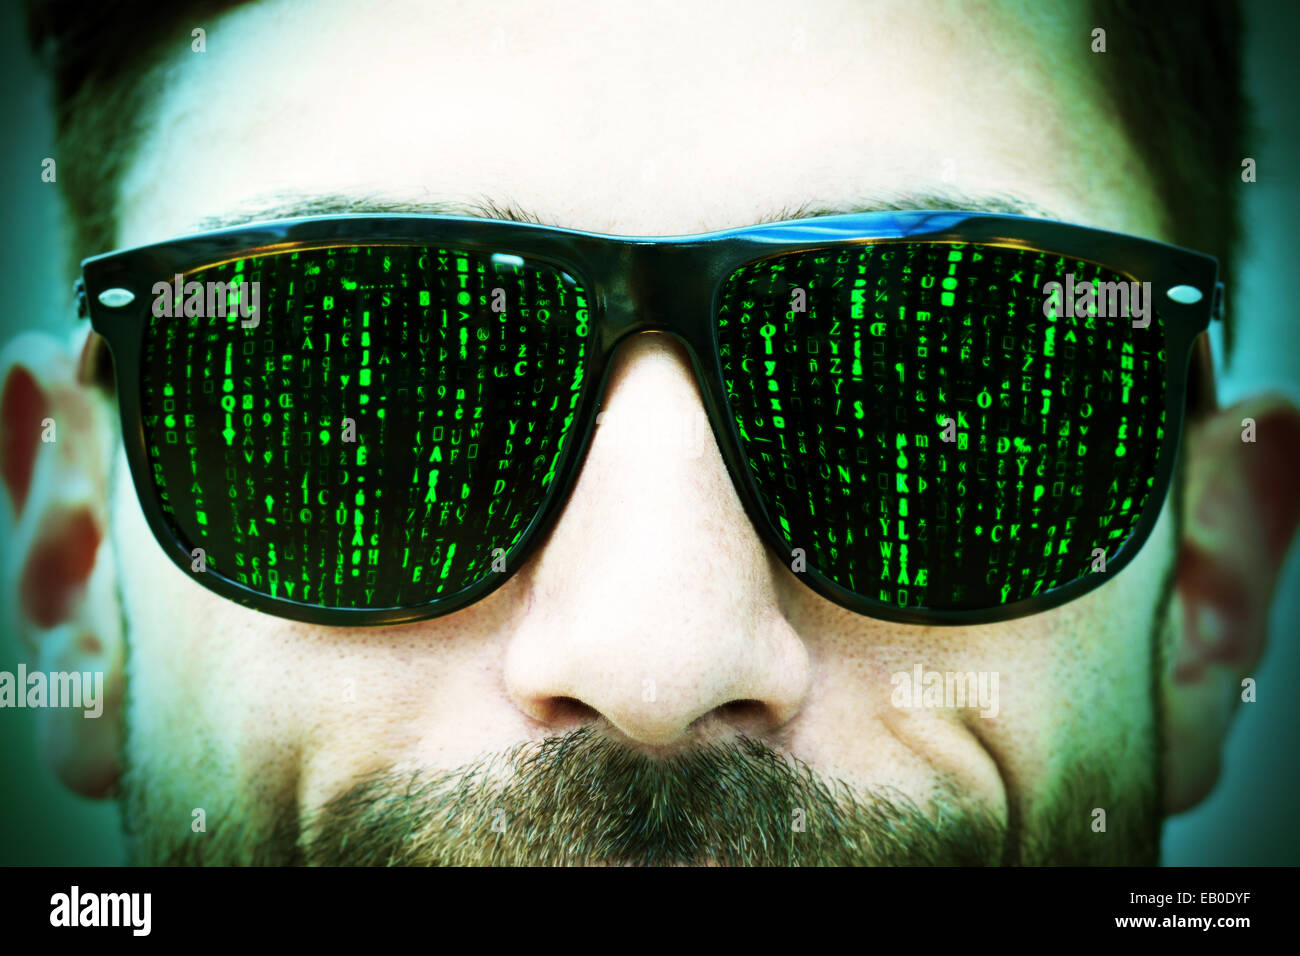 Matrix eyes - Stock Image